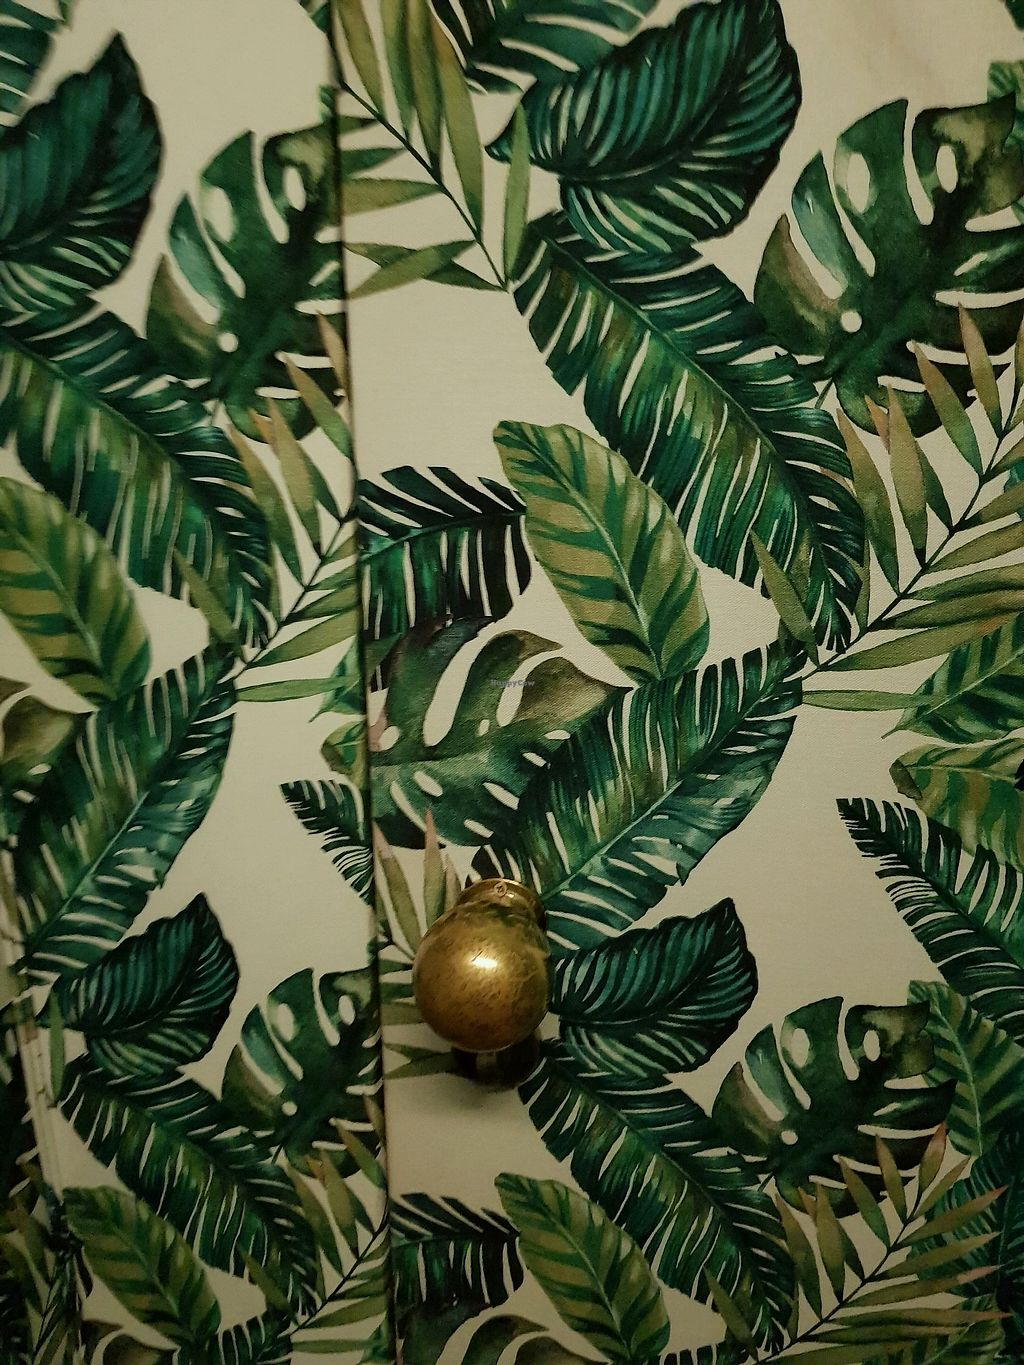 """Photo of Organic Caffe - Chiado  by <a href=""""/members/profile/SerenaA"""">SerenaA</a> <br/>everywhere is banana leaf! <br/> December 16, 2017  - <a href='/contact/abuse/image/99667/336286'>Report</a>"""